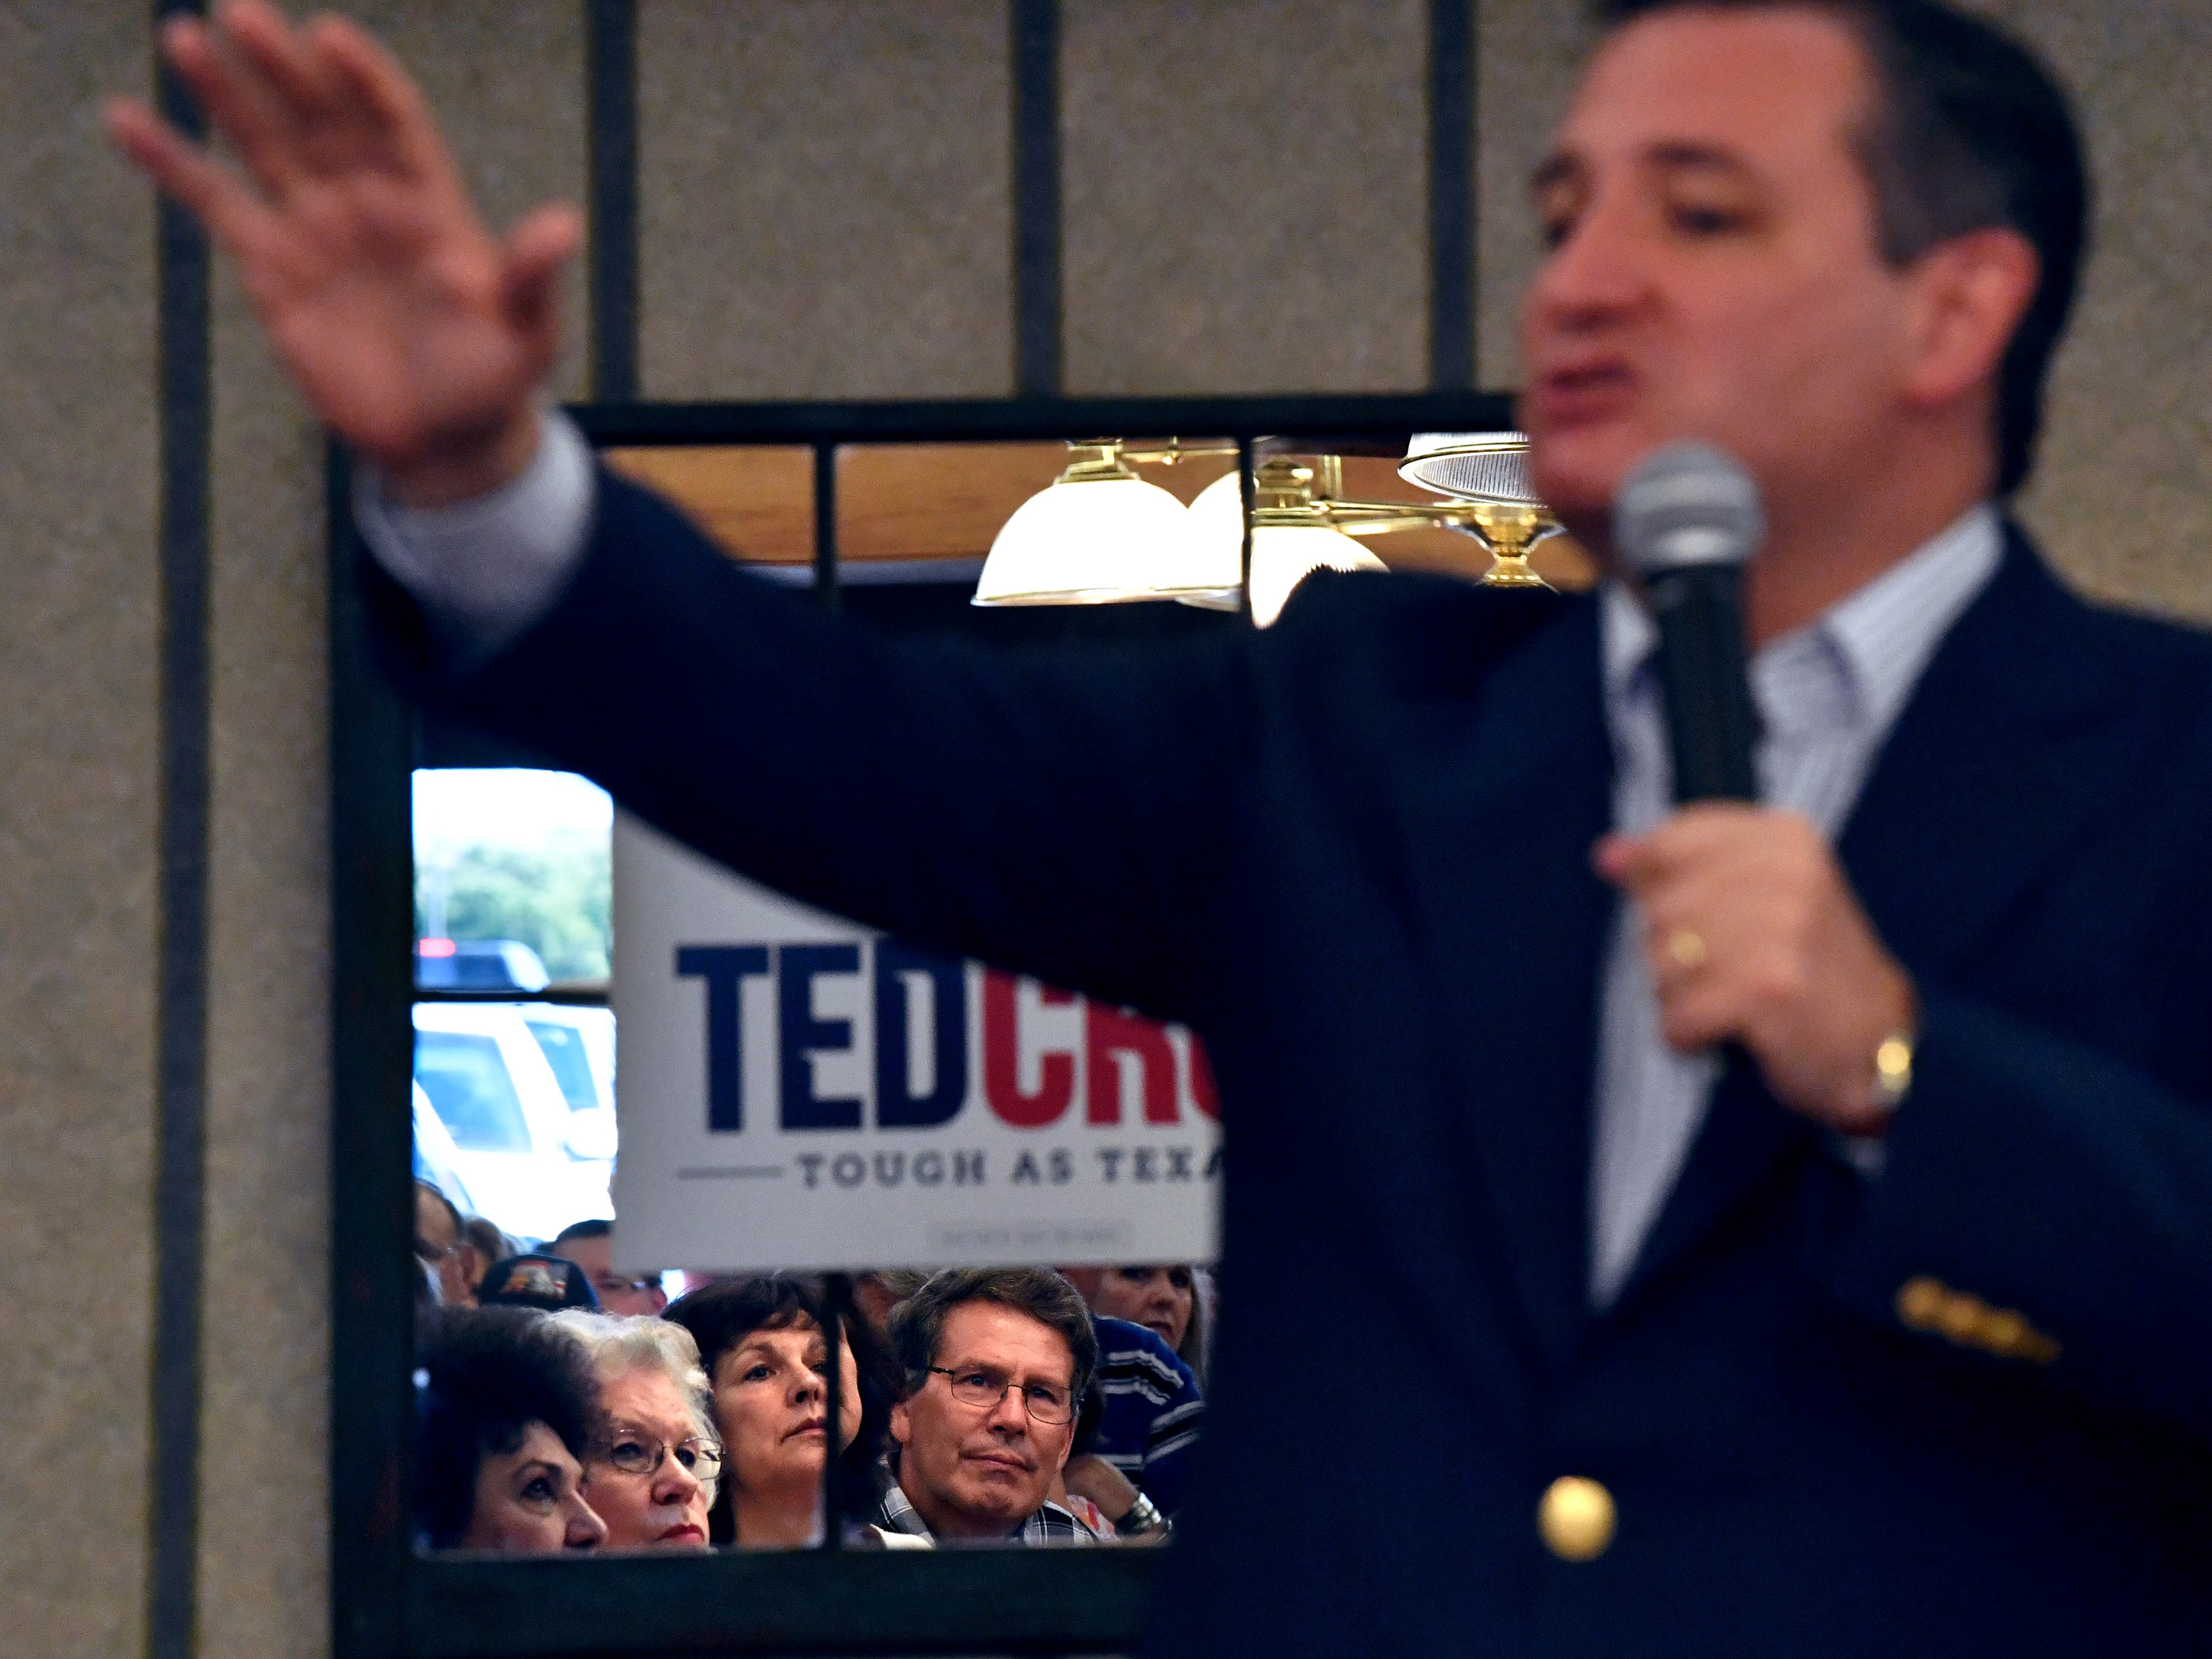 Audience members are reflected in a mirror as Senator Ted Cruz addresses them during a town hall meeting Thursday August 9, 2018 in Brownwood. Cruz spoke to and greeted supporters for over 90 minutes at Underwood's Cafeteria.